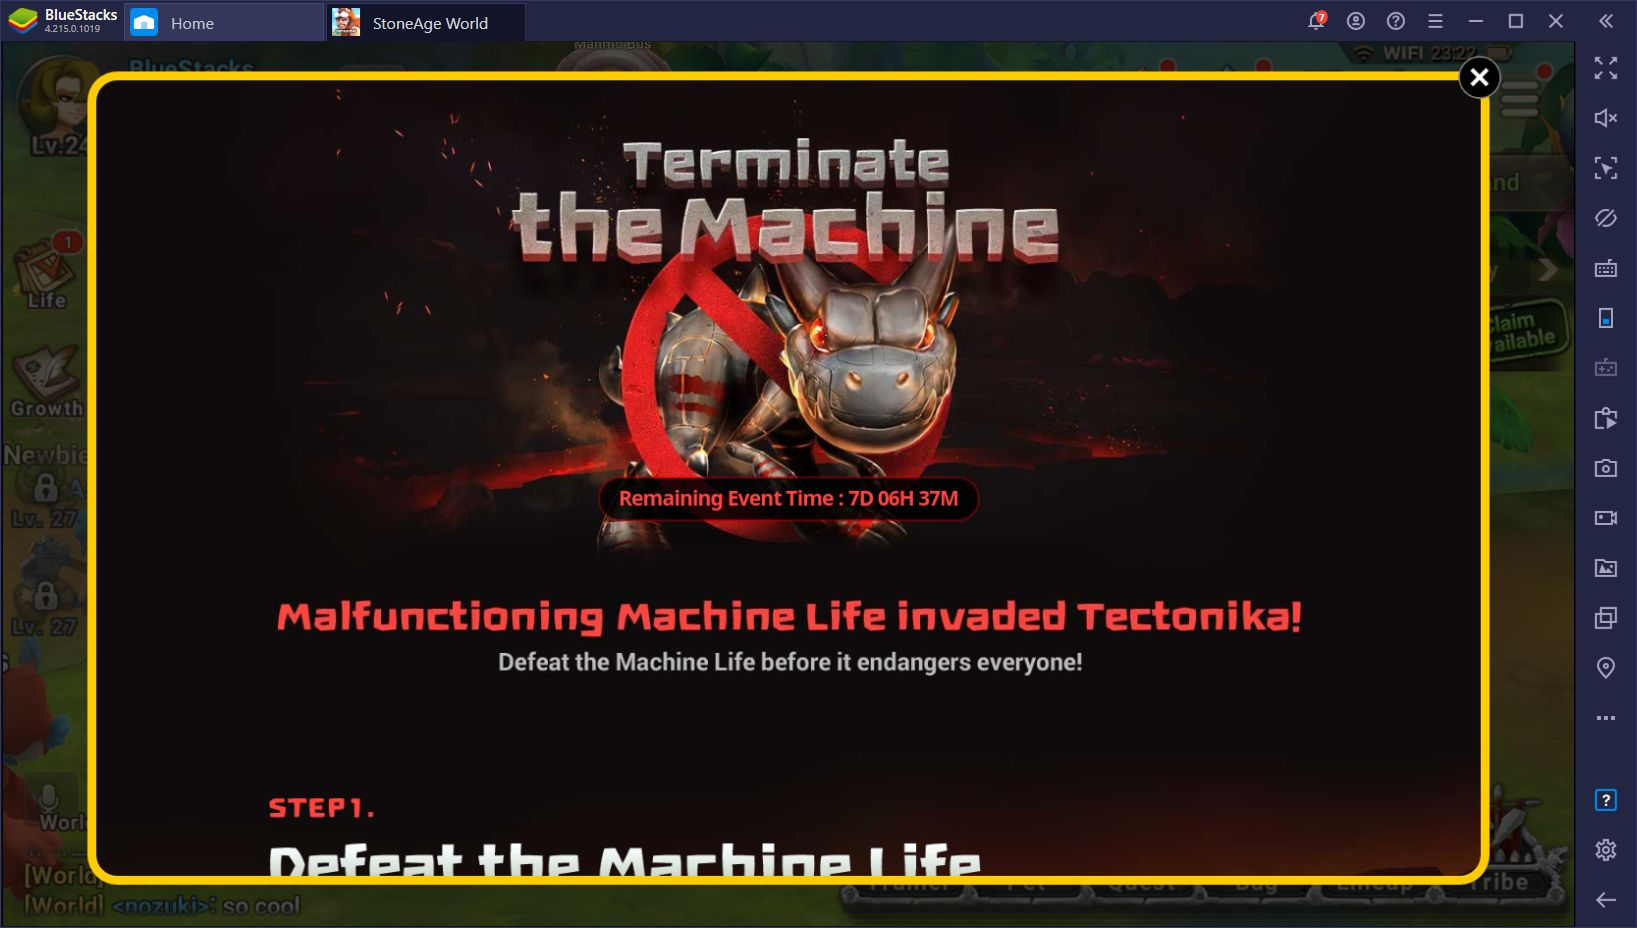 StoneAge World Machine Invasion Update Brings Mechanical Pets and New Events